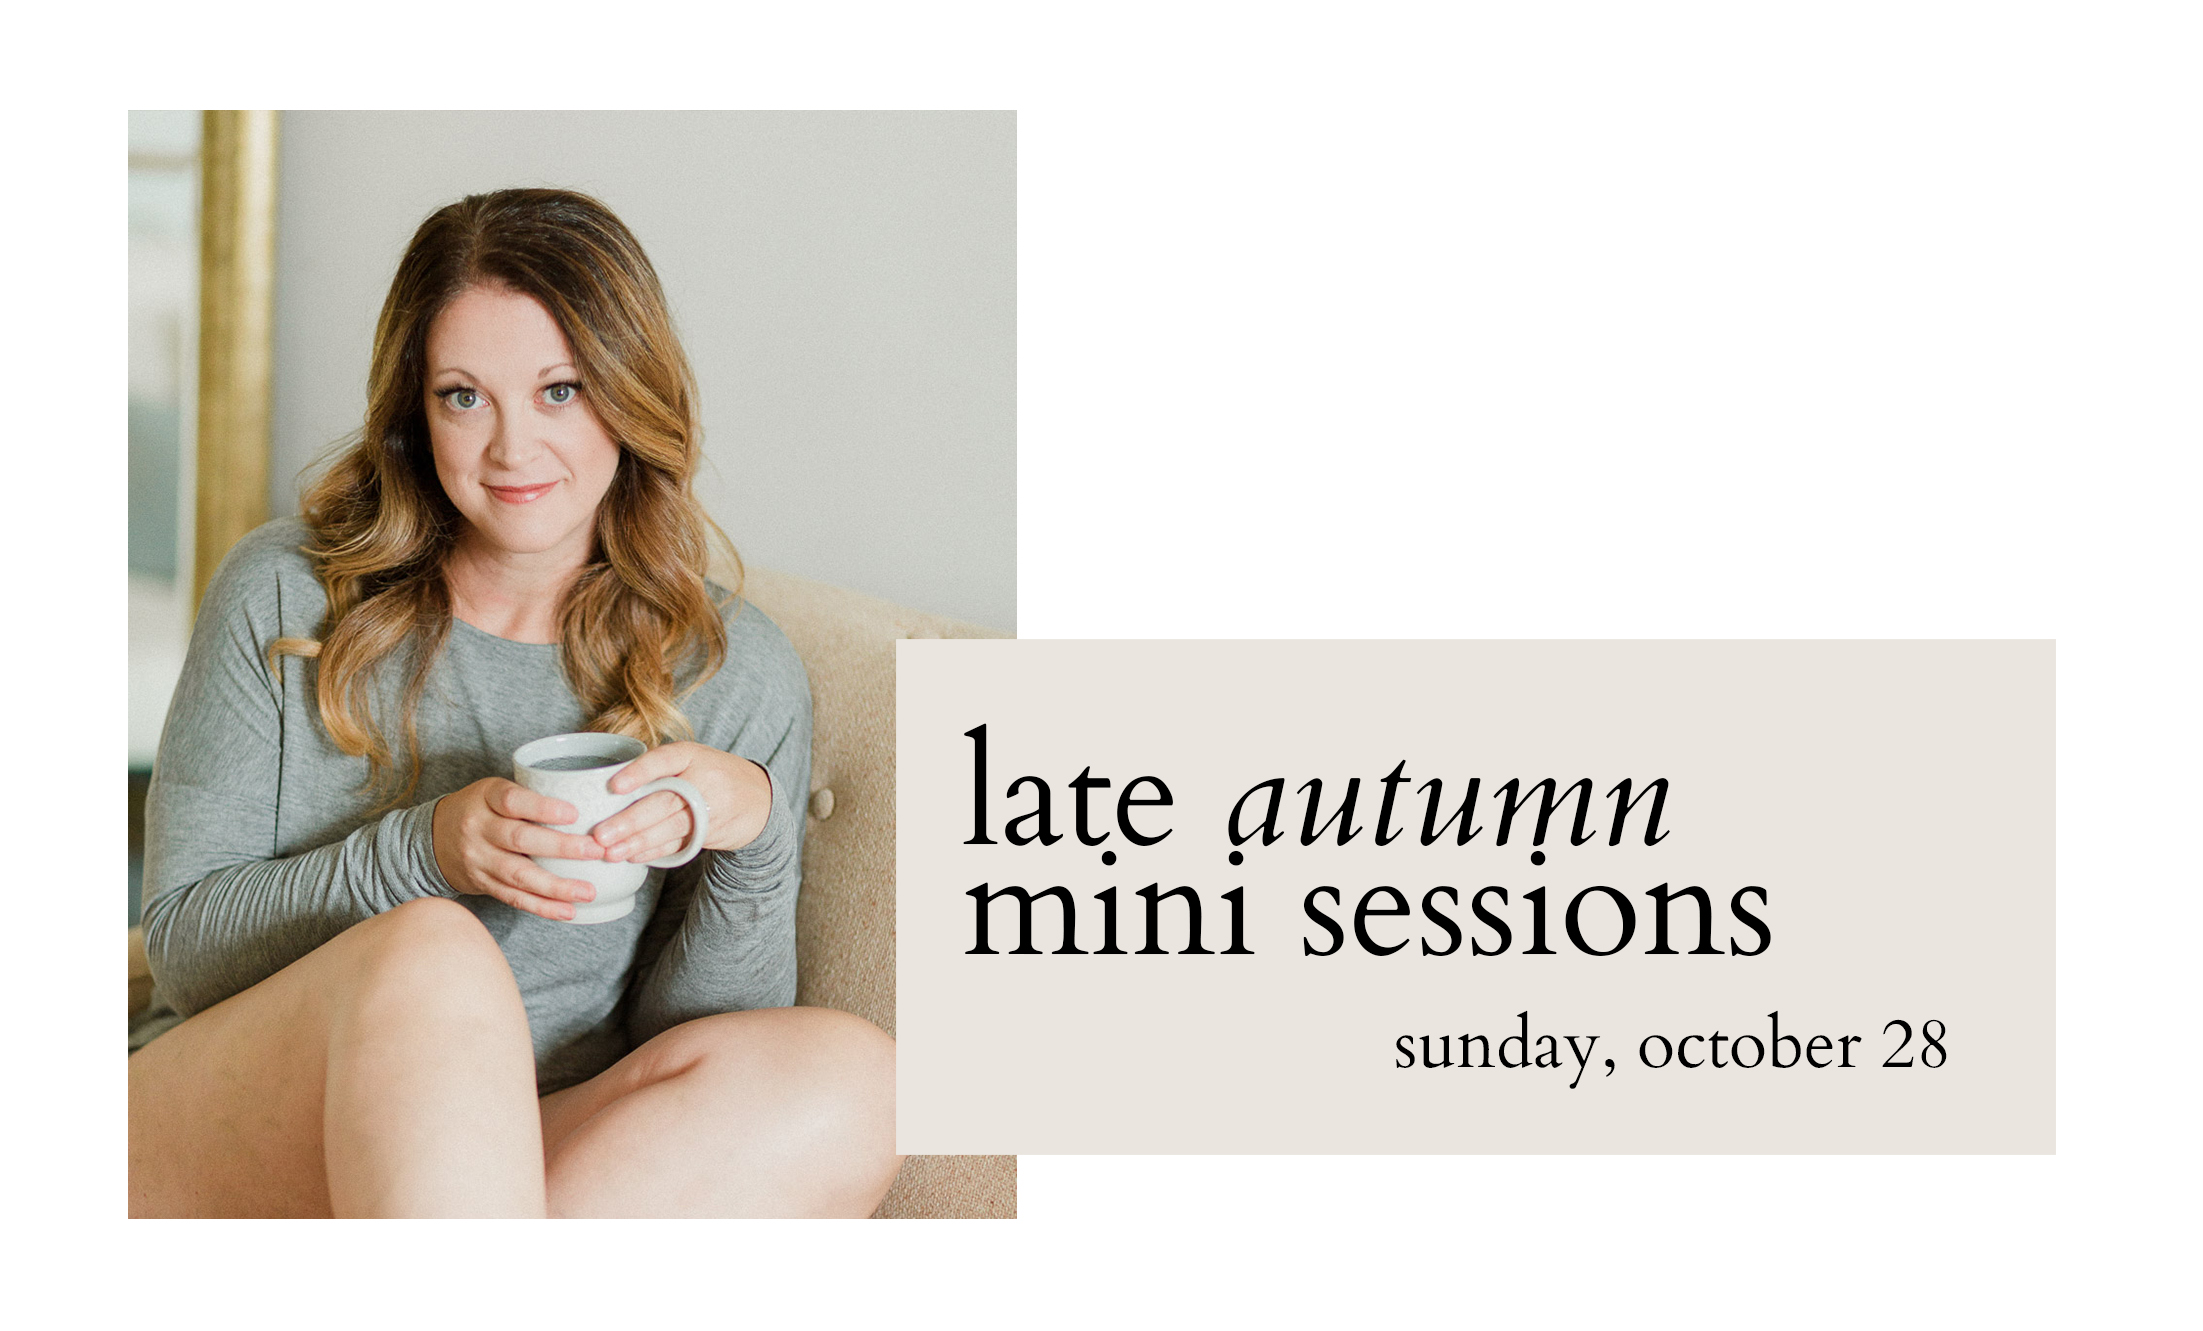 late autumn mini sessions by Illuminate Boudoir.jpg